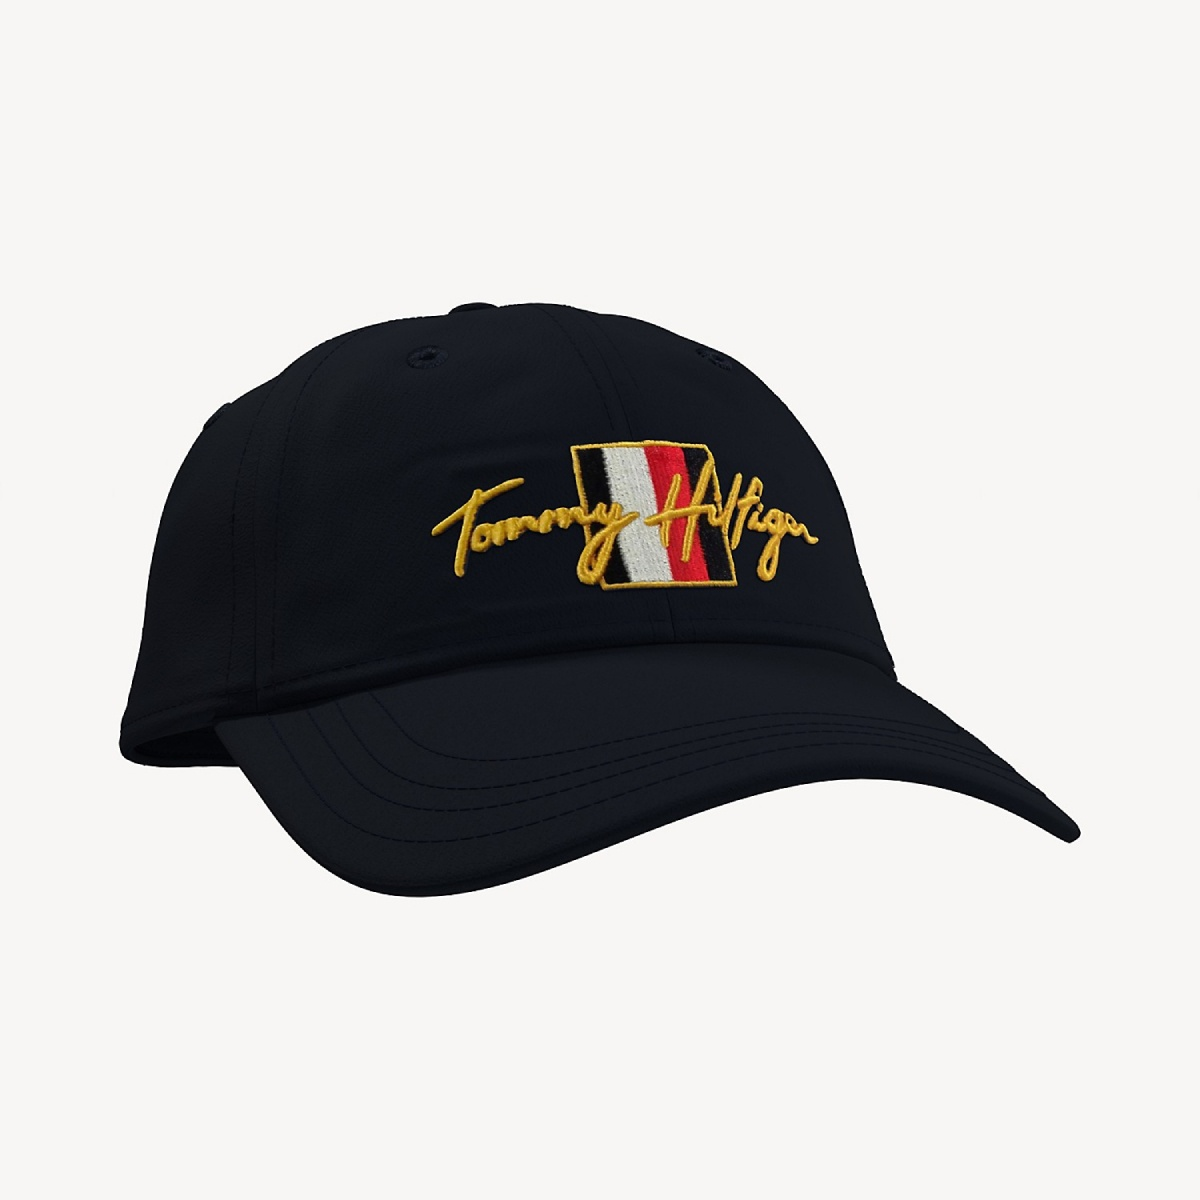 non-tommy-hilfiger-87